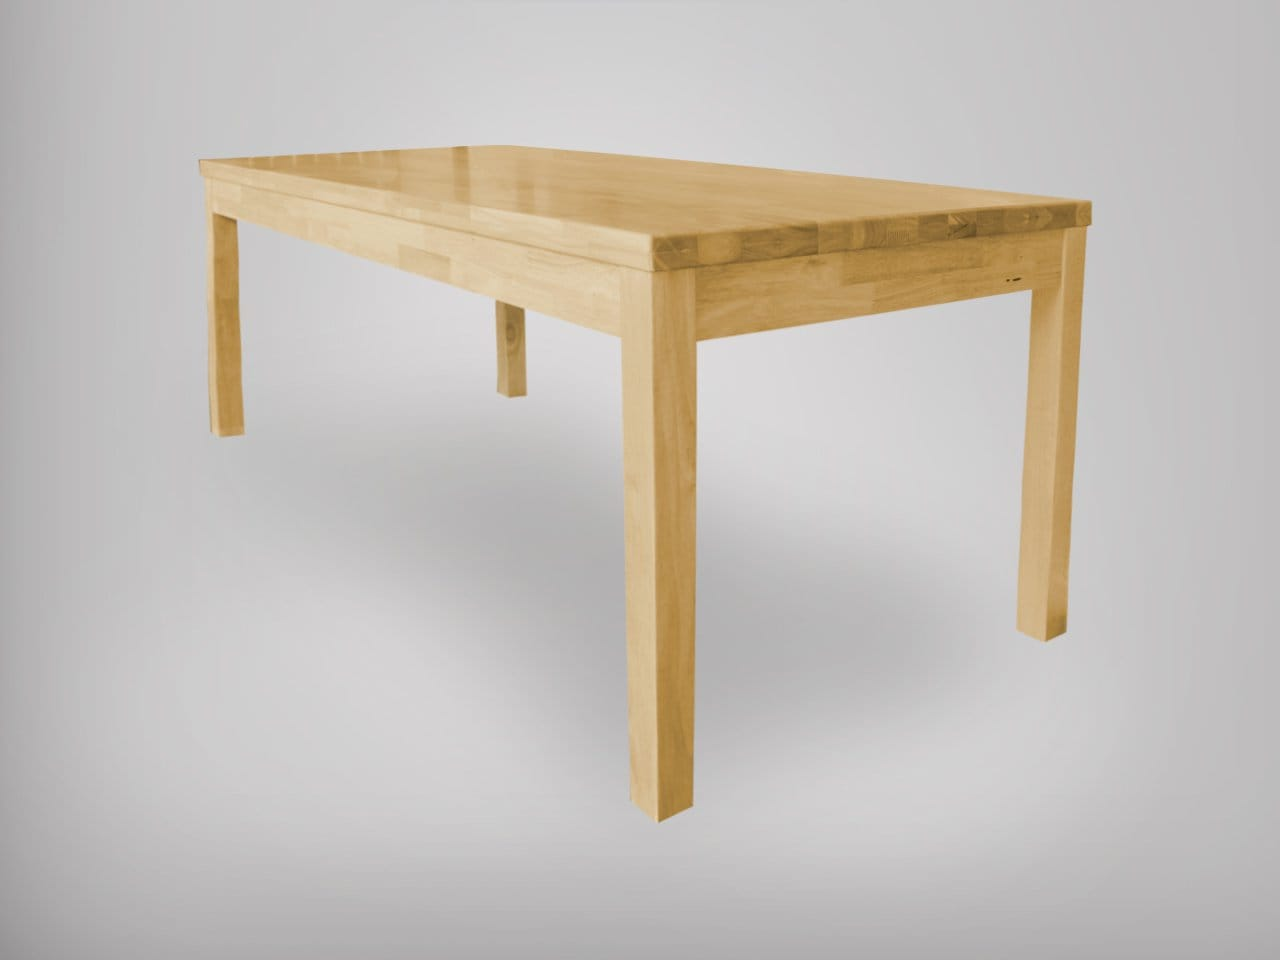 Clean rubberwood comfort design the chair table people for Table design latex